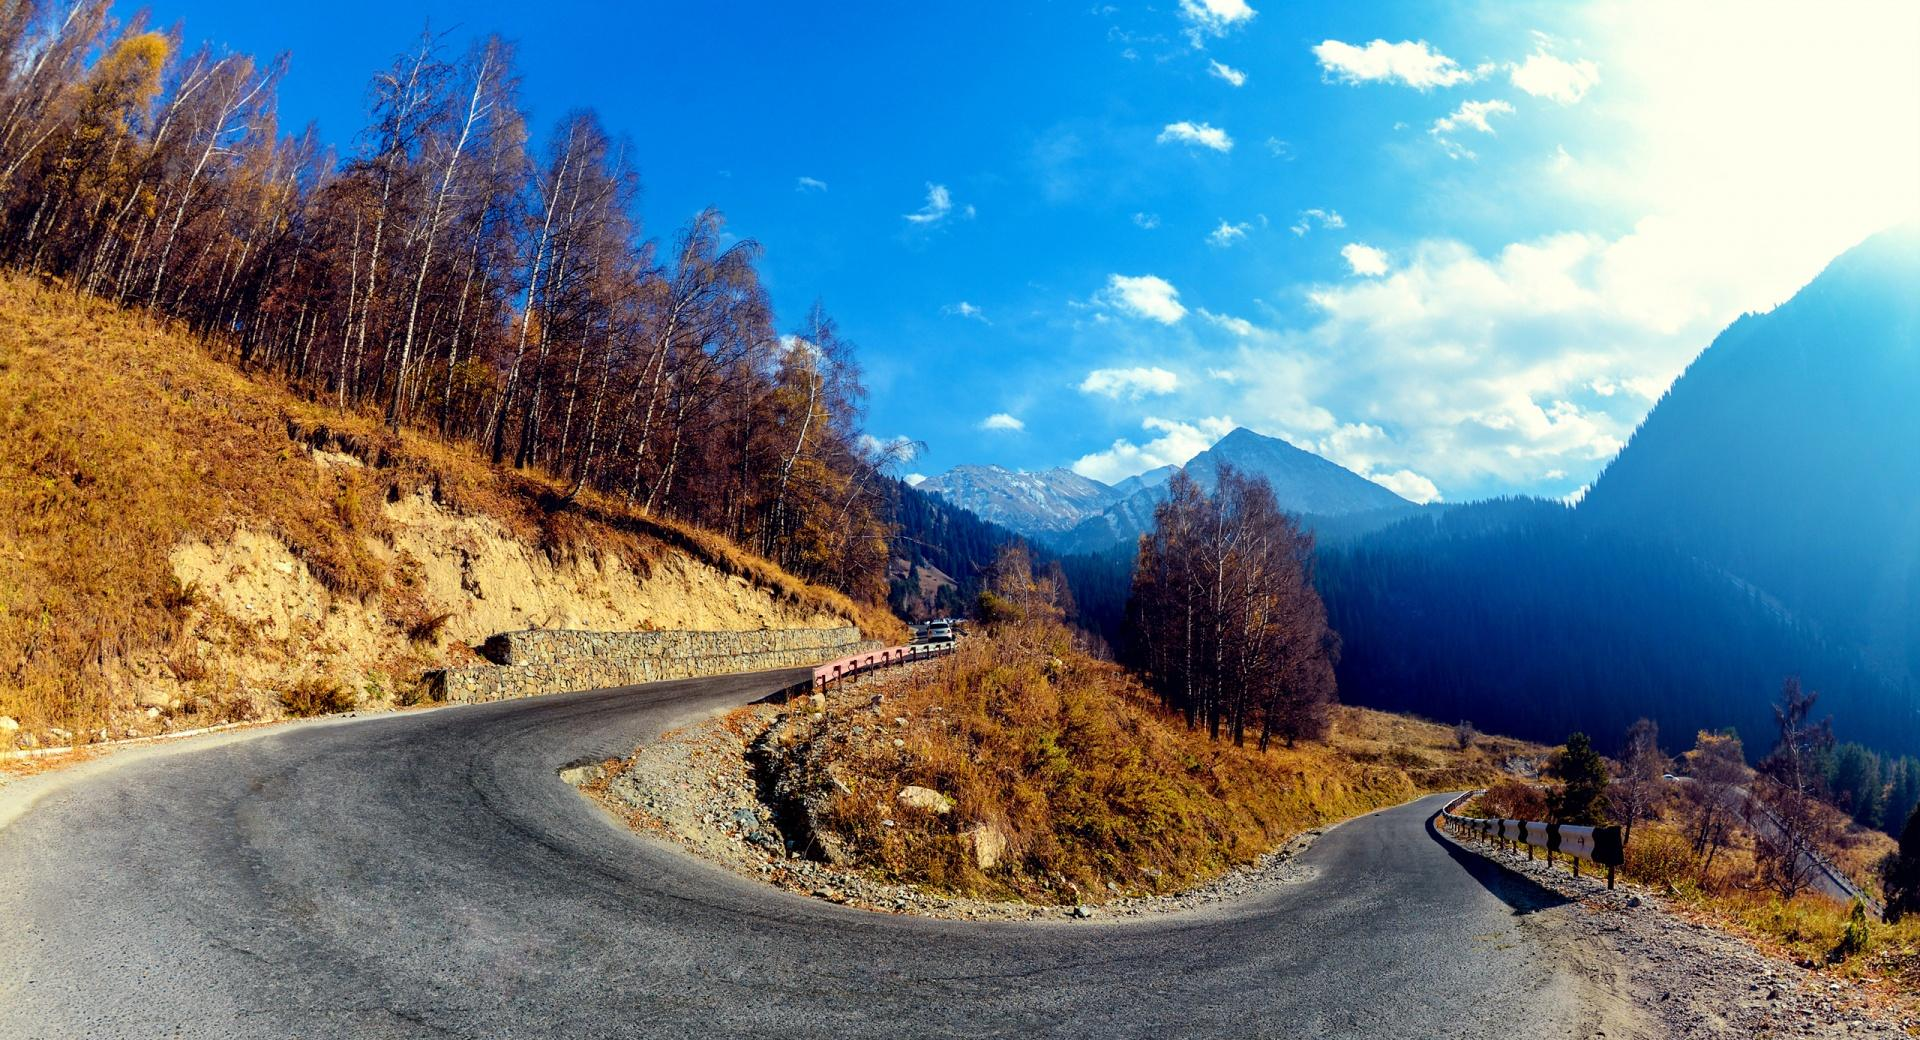 Mountain Hairpin Curve wallpapers HD quality